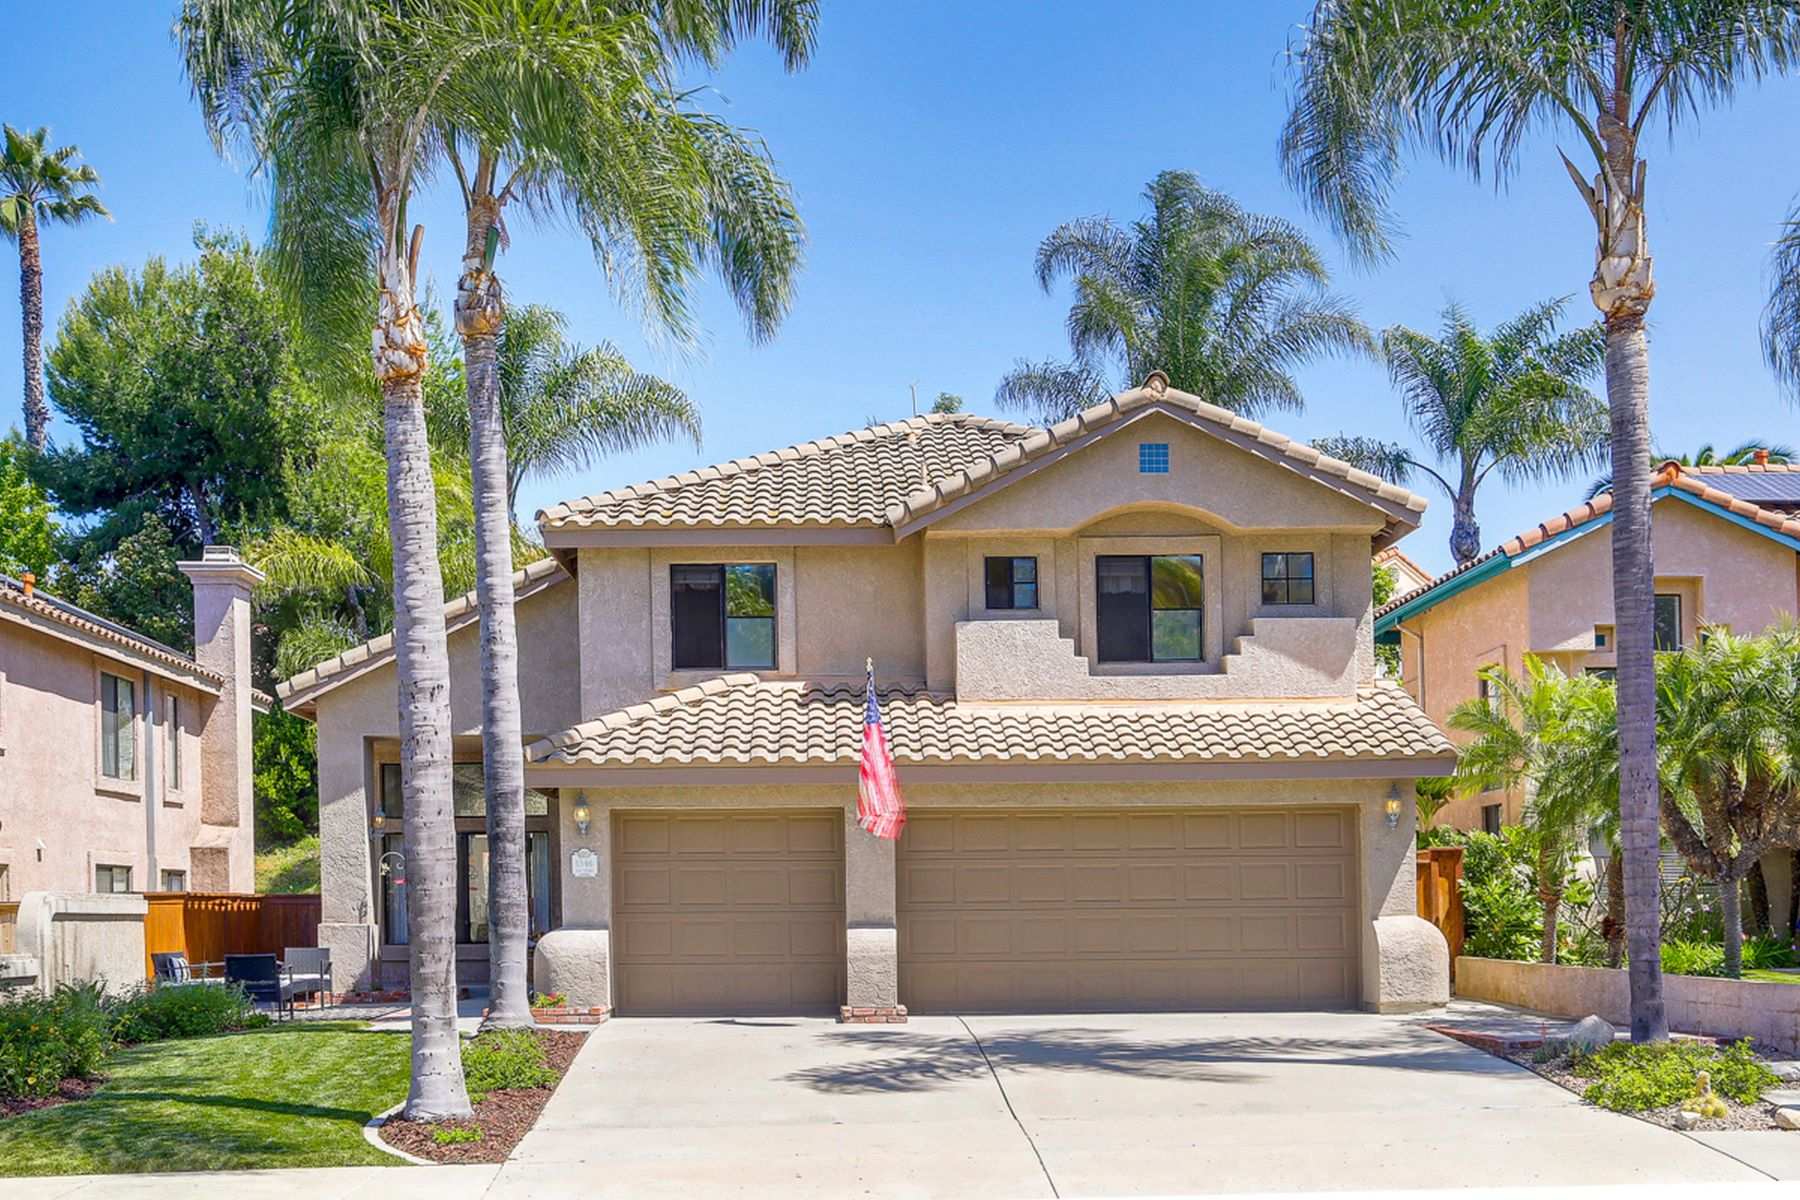 Single Family Homes for Sale at 1346 Via Isidro Oceanside CA 92056 1346 Via Isidro Oceanside, California 92056 United States